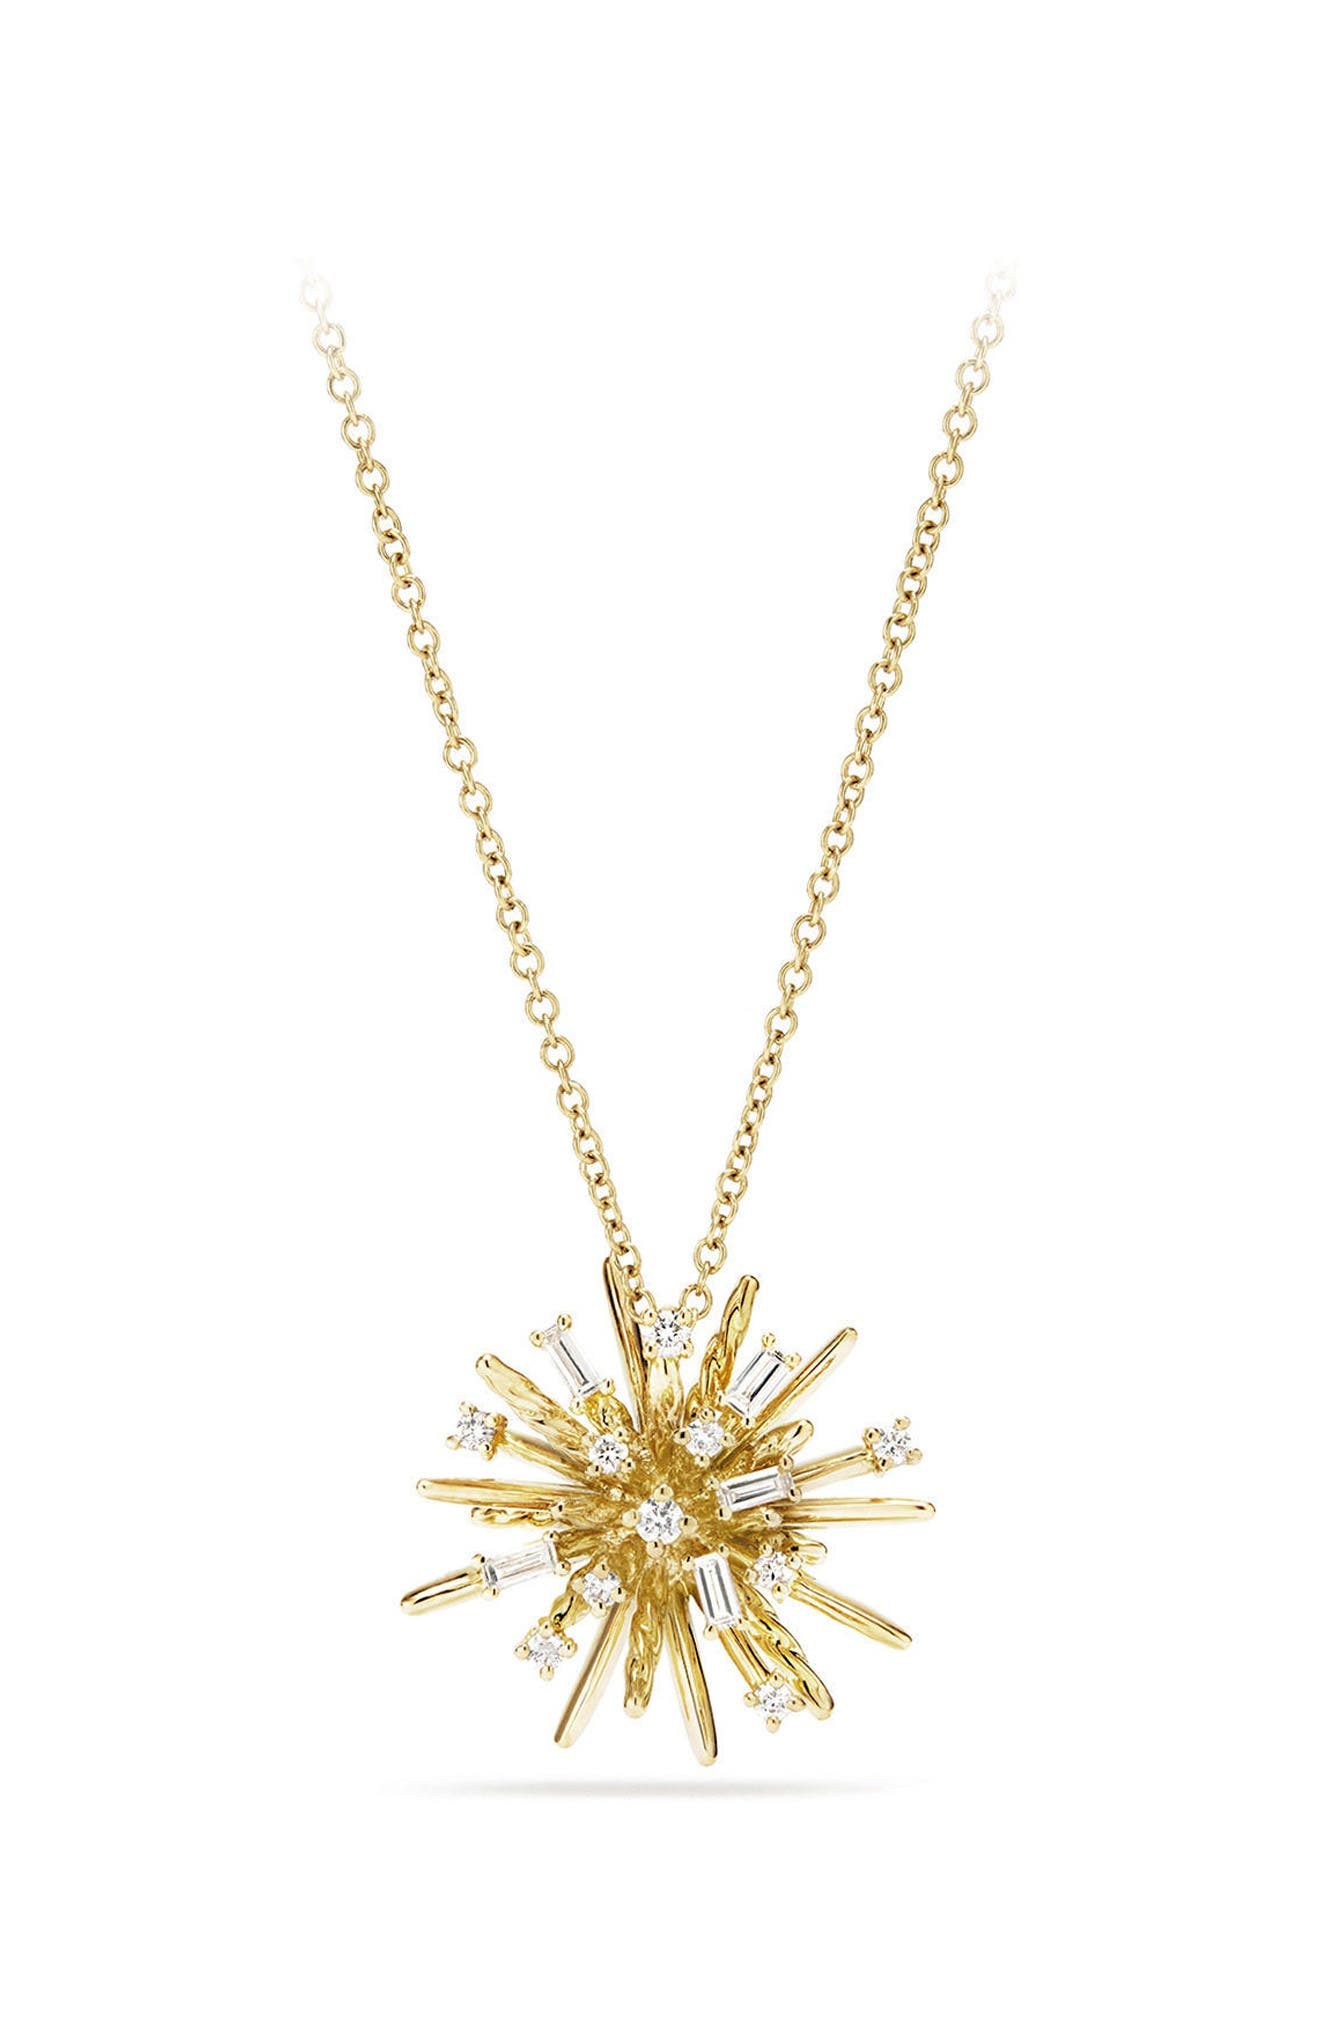 Supernova Small Pendant Necklace with Diamonds in 18K White Gold,                         Main,                         color, Yellow Gold